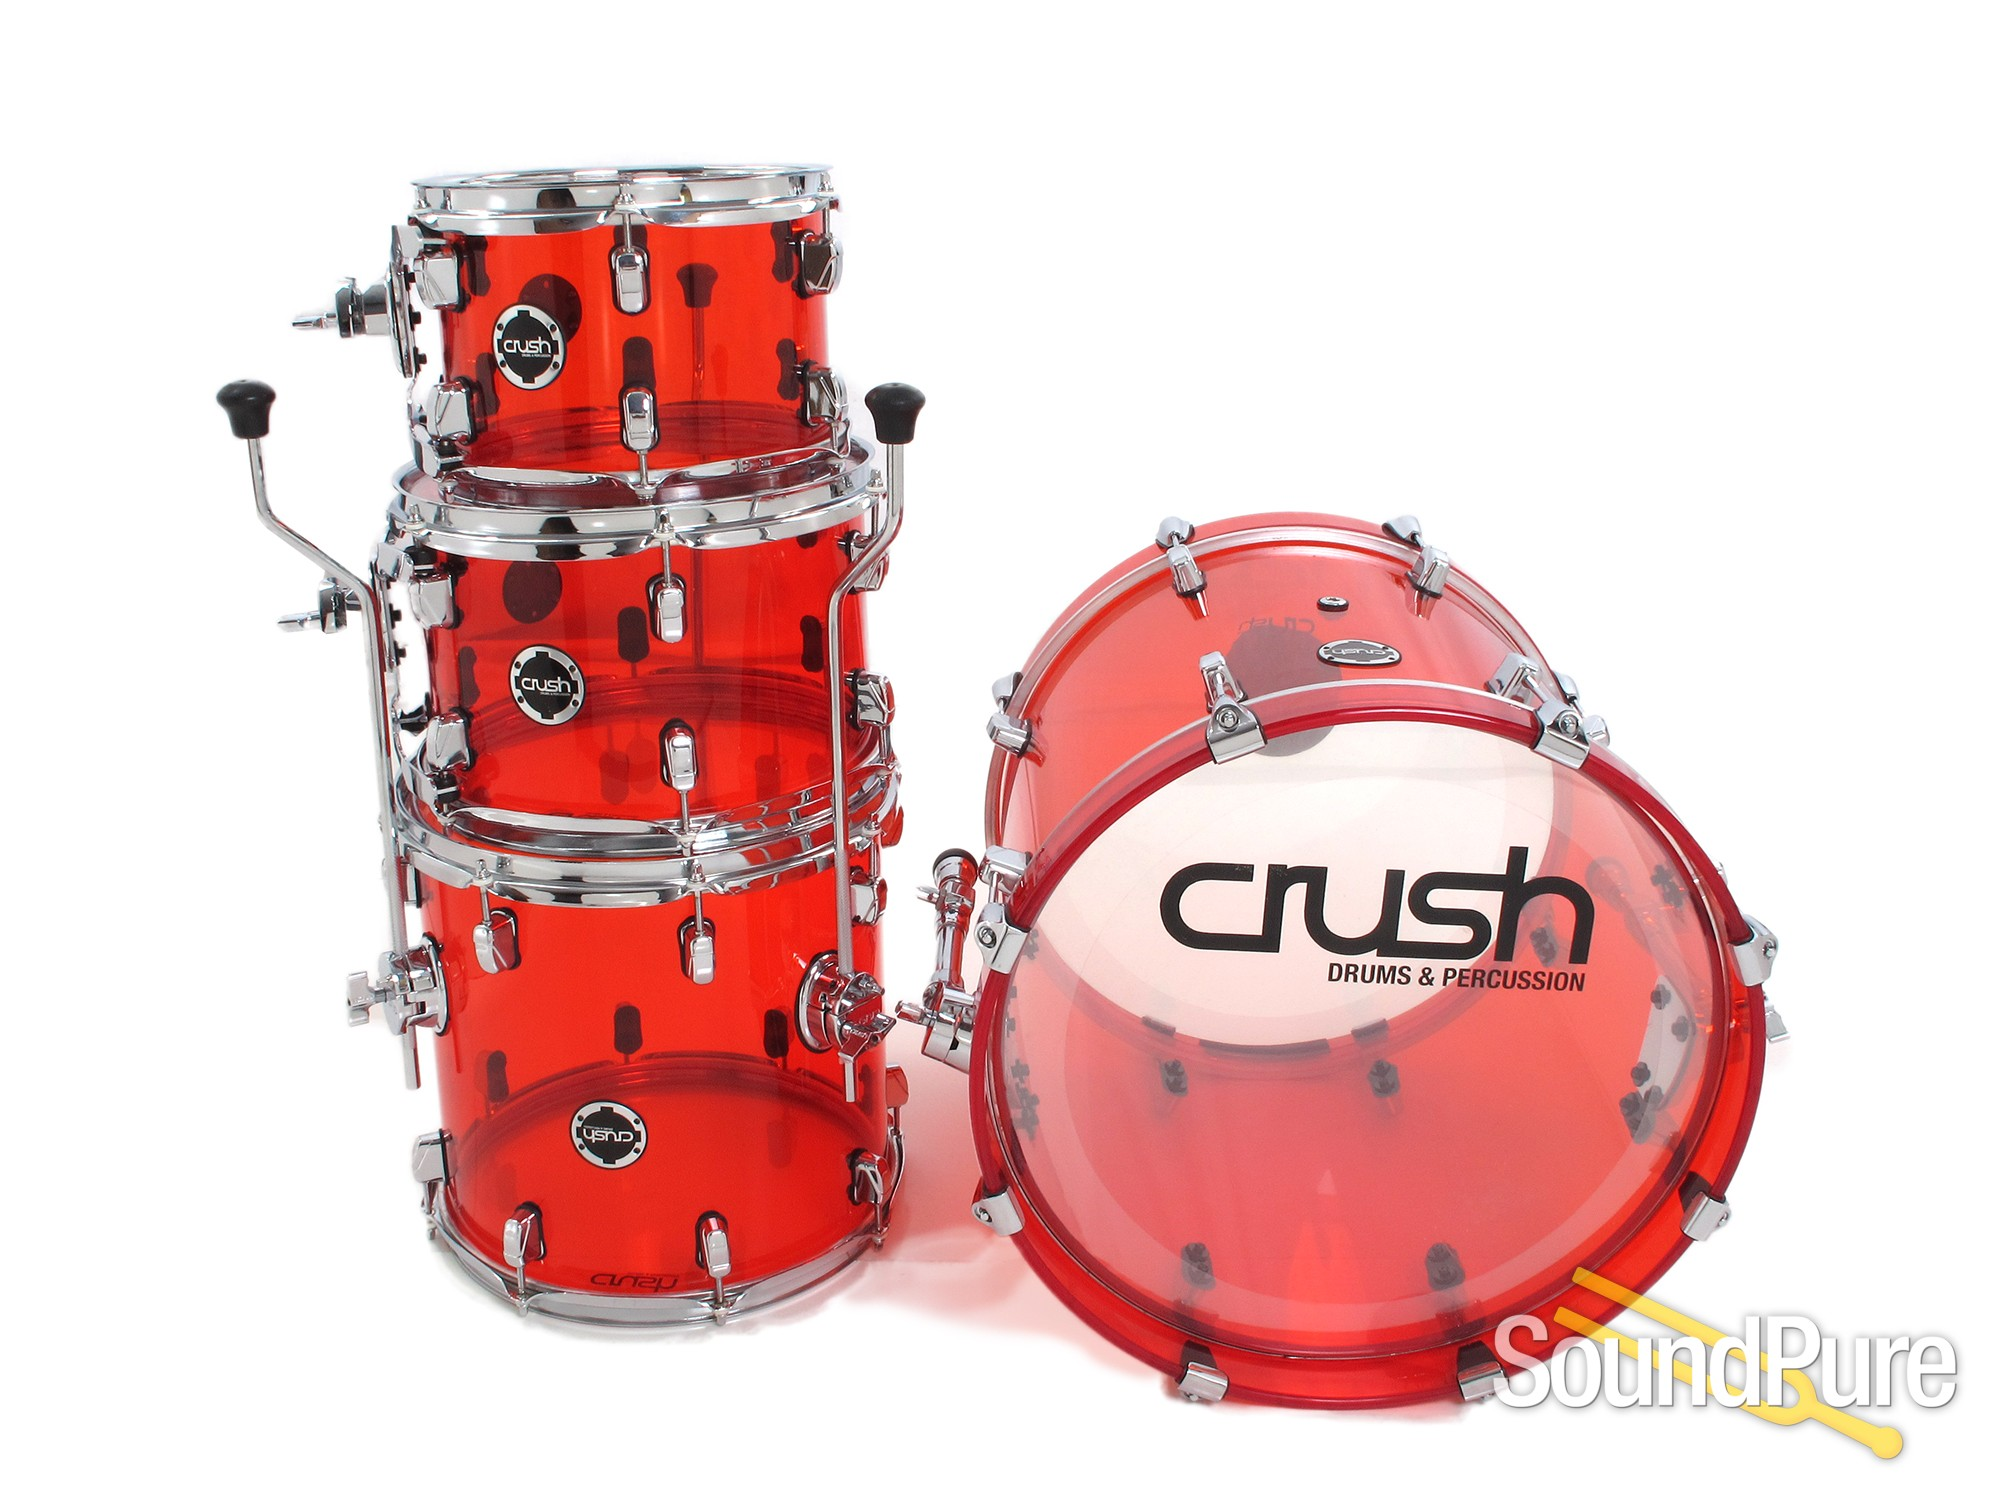 crush drums 4pc acrylic series drum set red used ebay. Black Bedroom Furniture Sets. Home Design Ideas